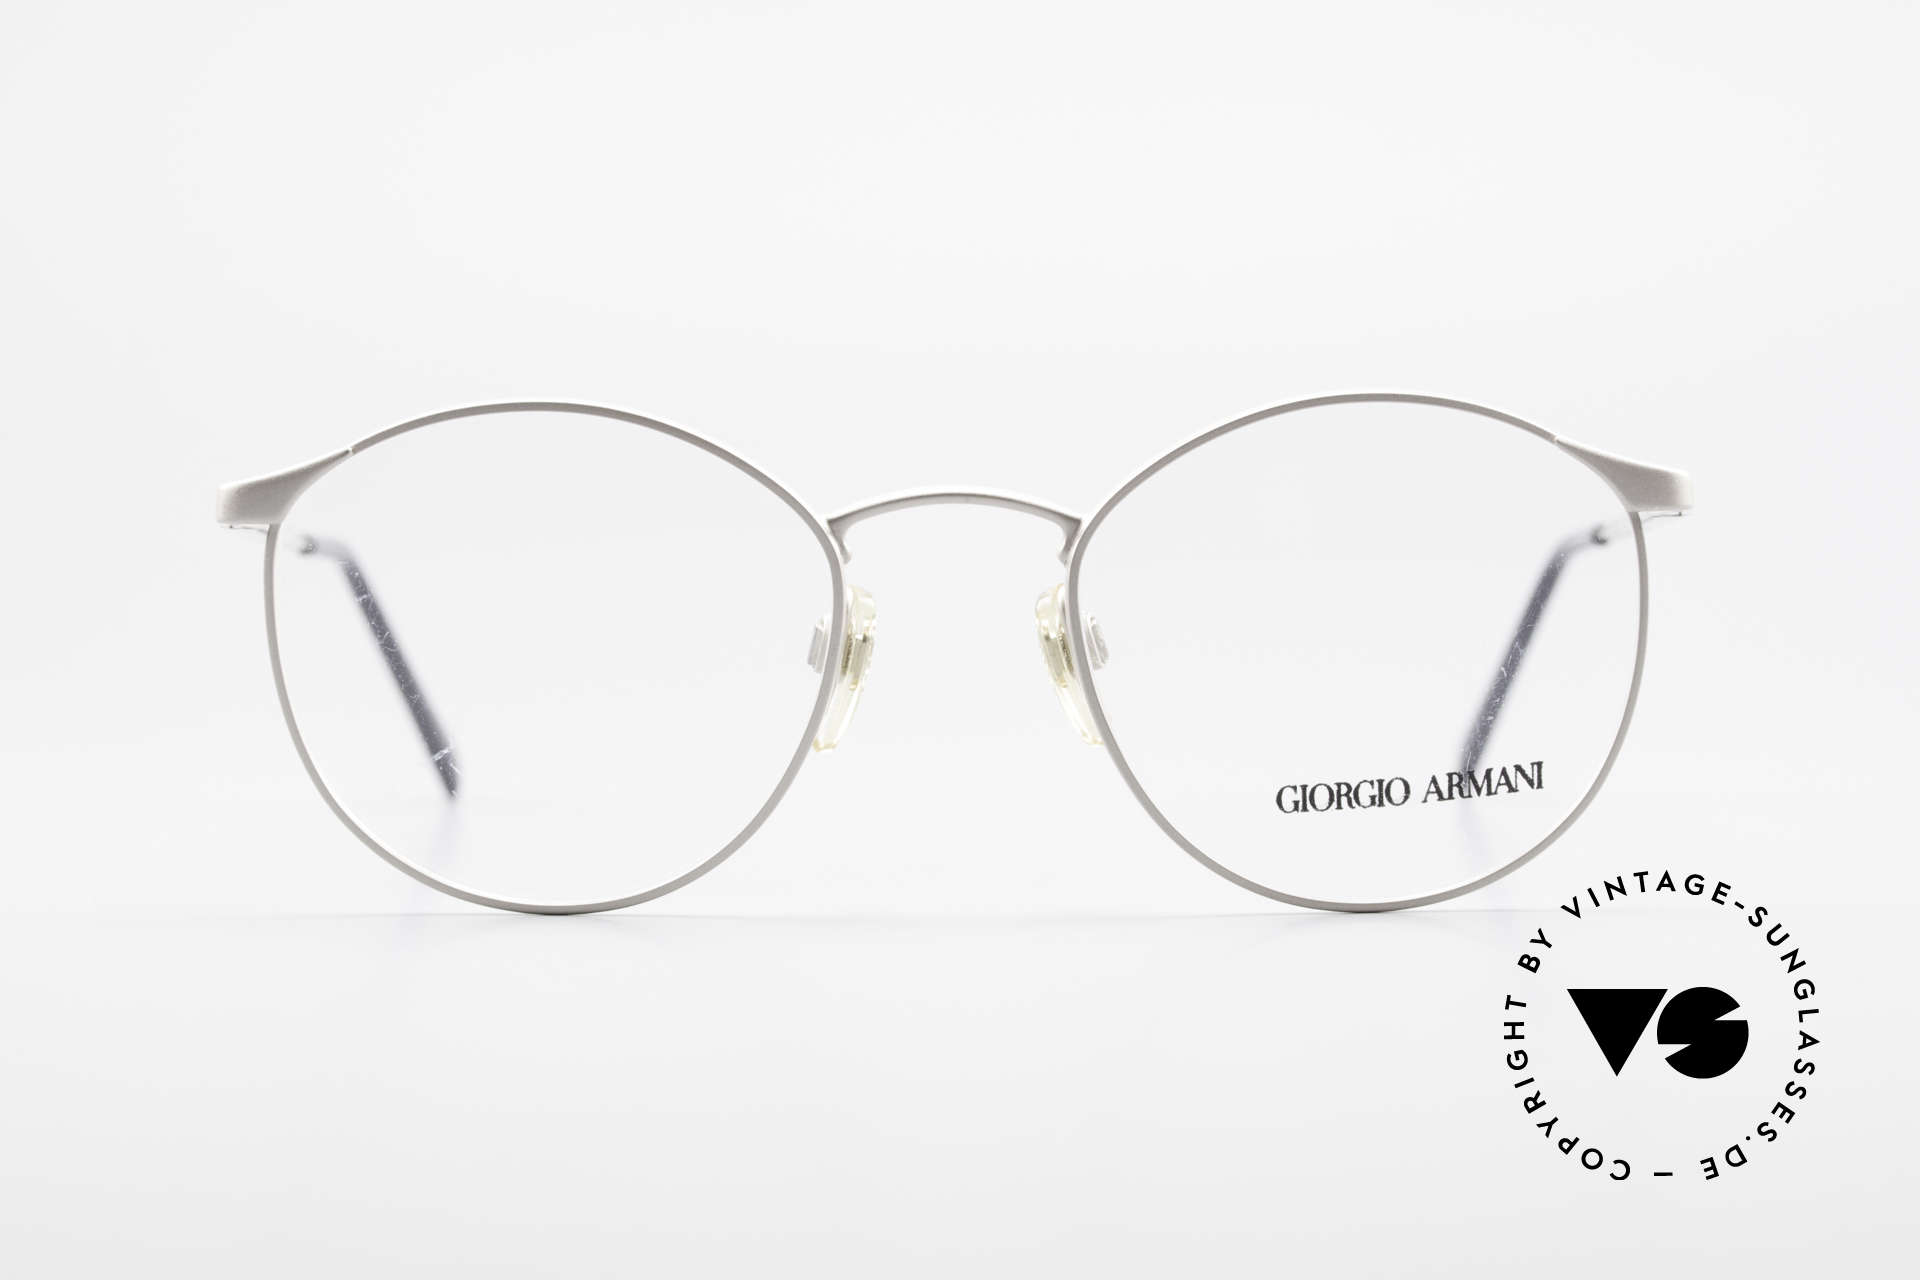 Giorgio Armani 163 Clip On 132 Panto Eyeglasses, Size: small, Made for Men